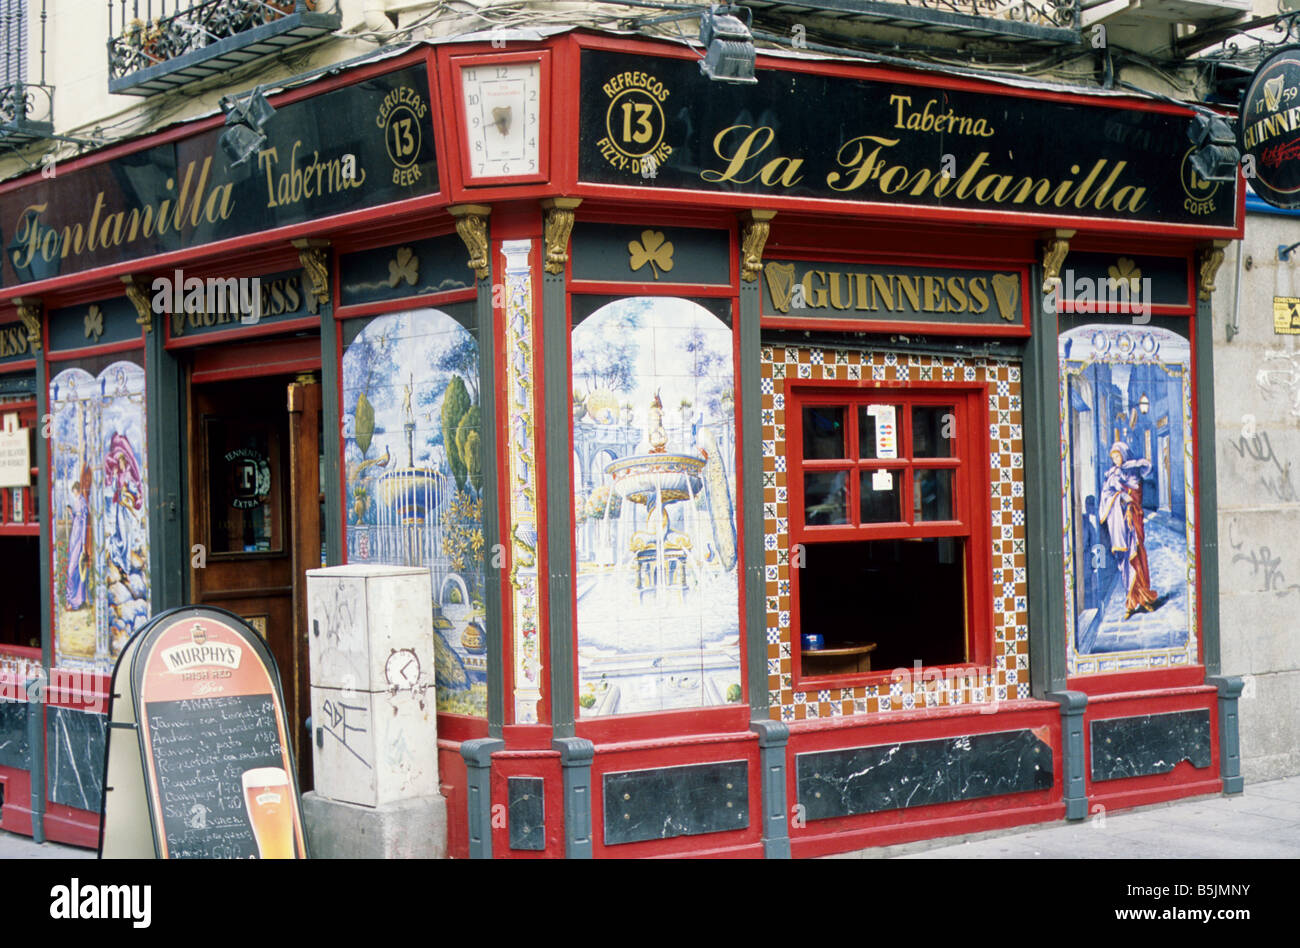 Madrid Spain Bar Called La Fontanilla Decorated With